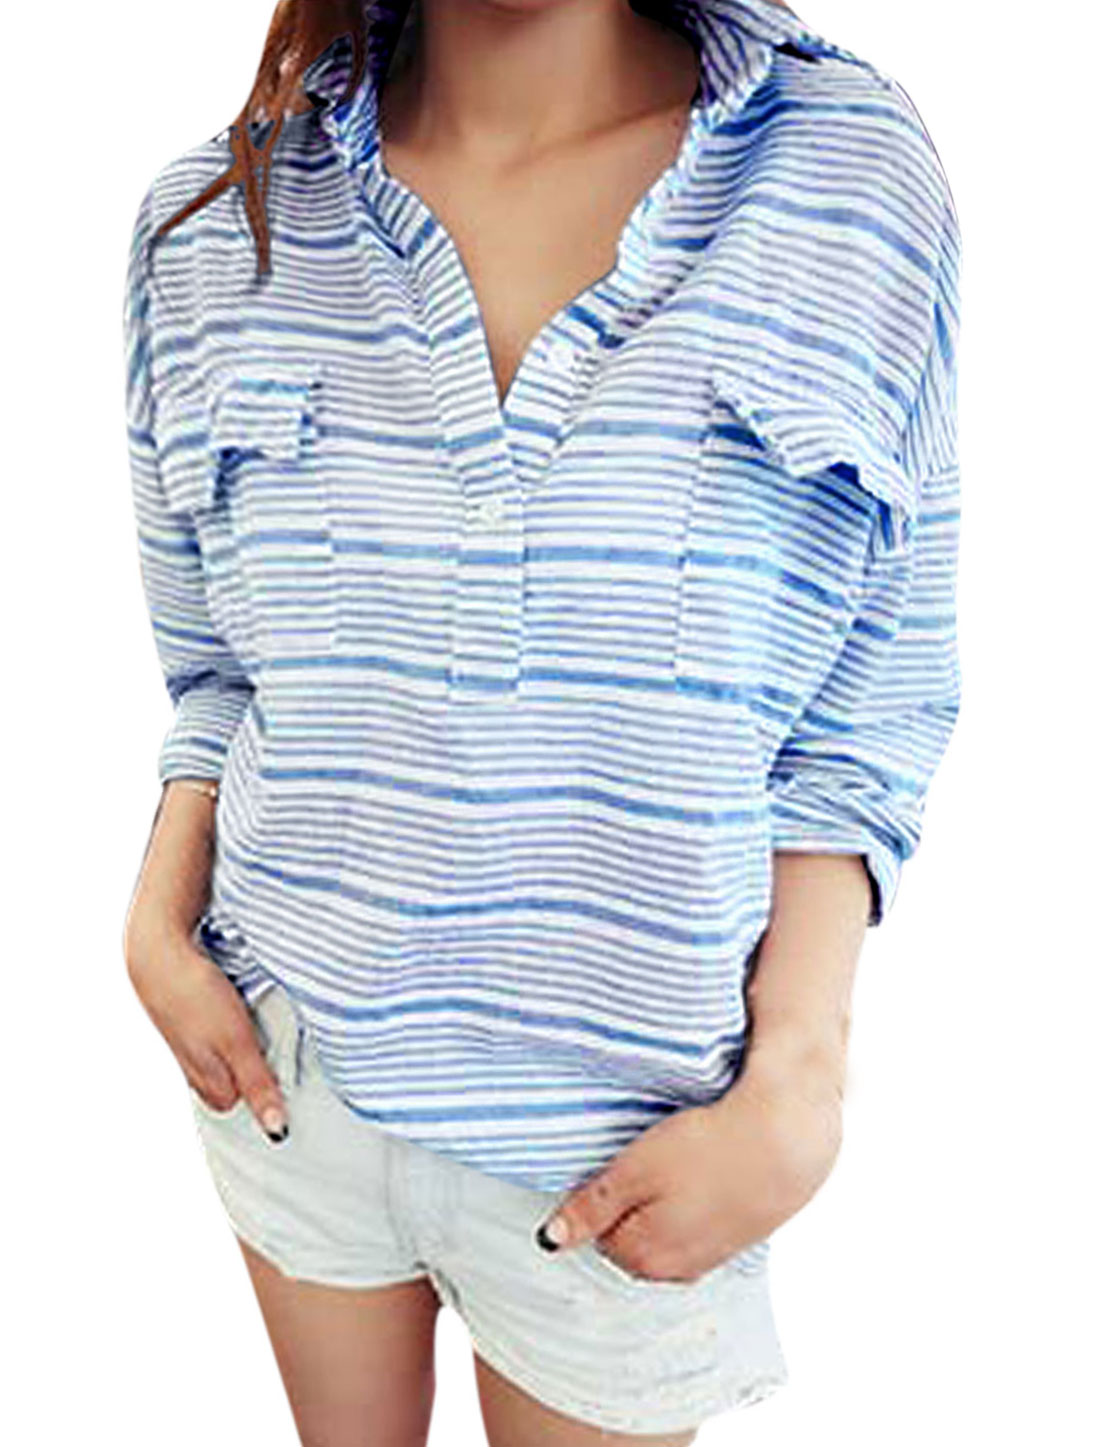 Lady Point Collar Batwing Sleeve Bar Striped Shirt Sky Blue White XS